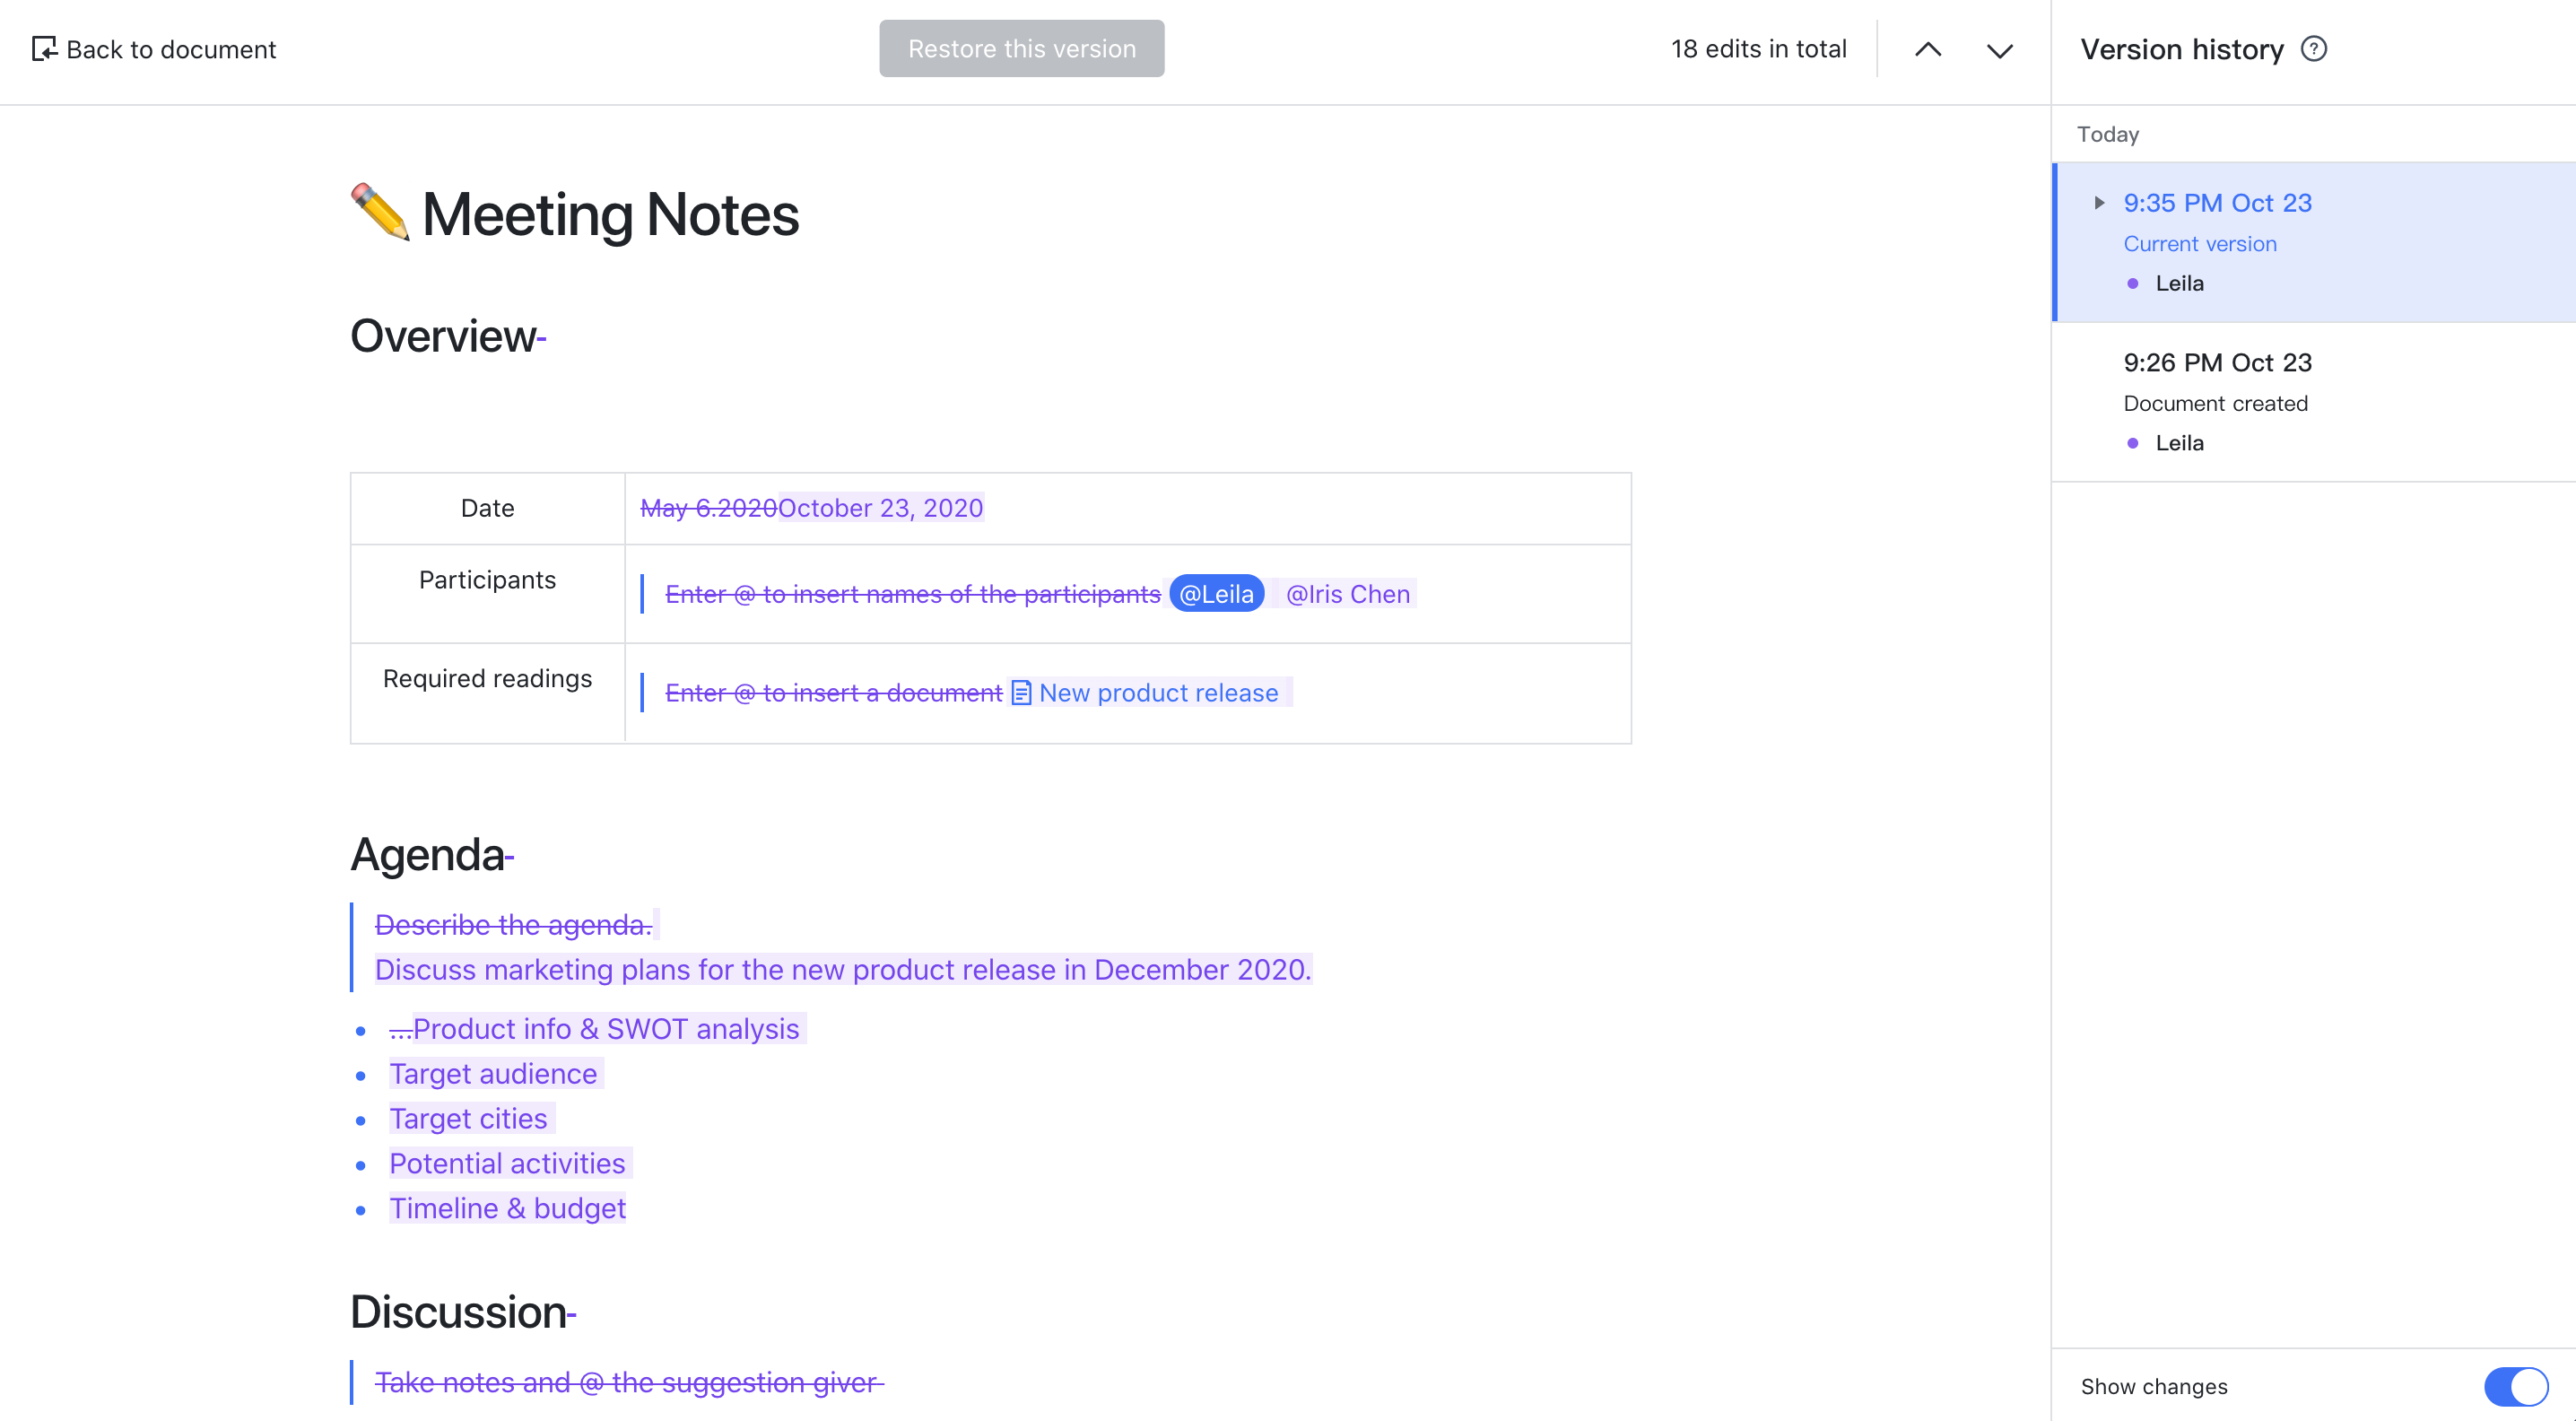 Use the updated version history in Docs